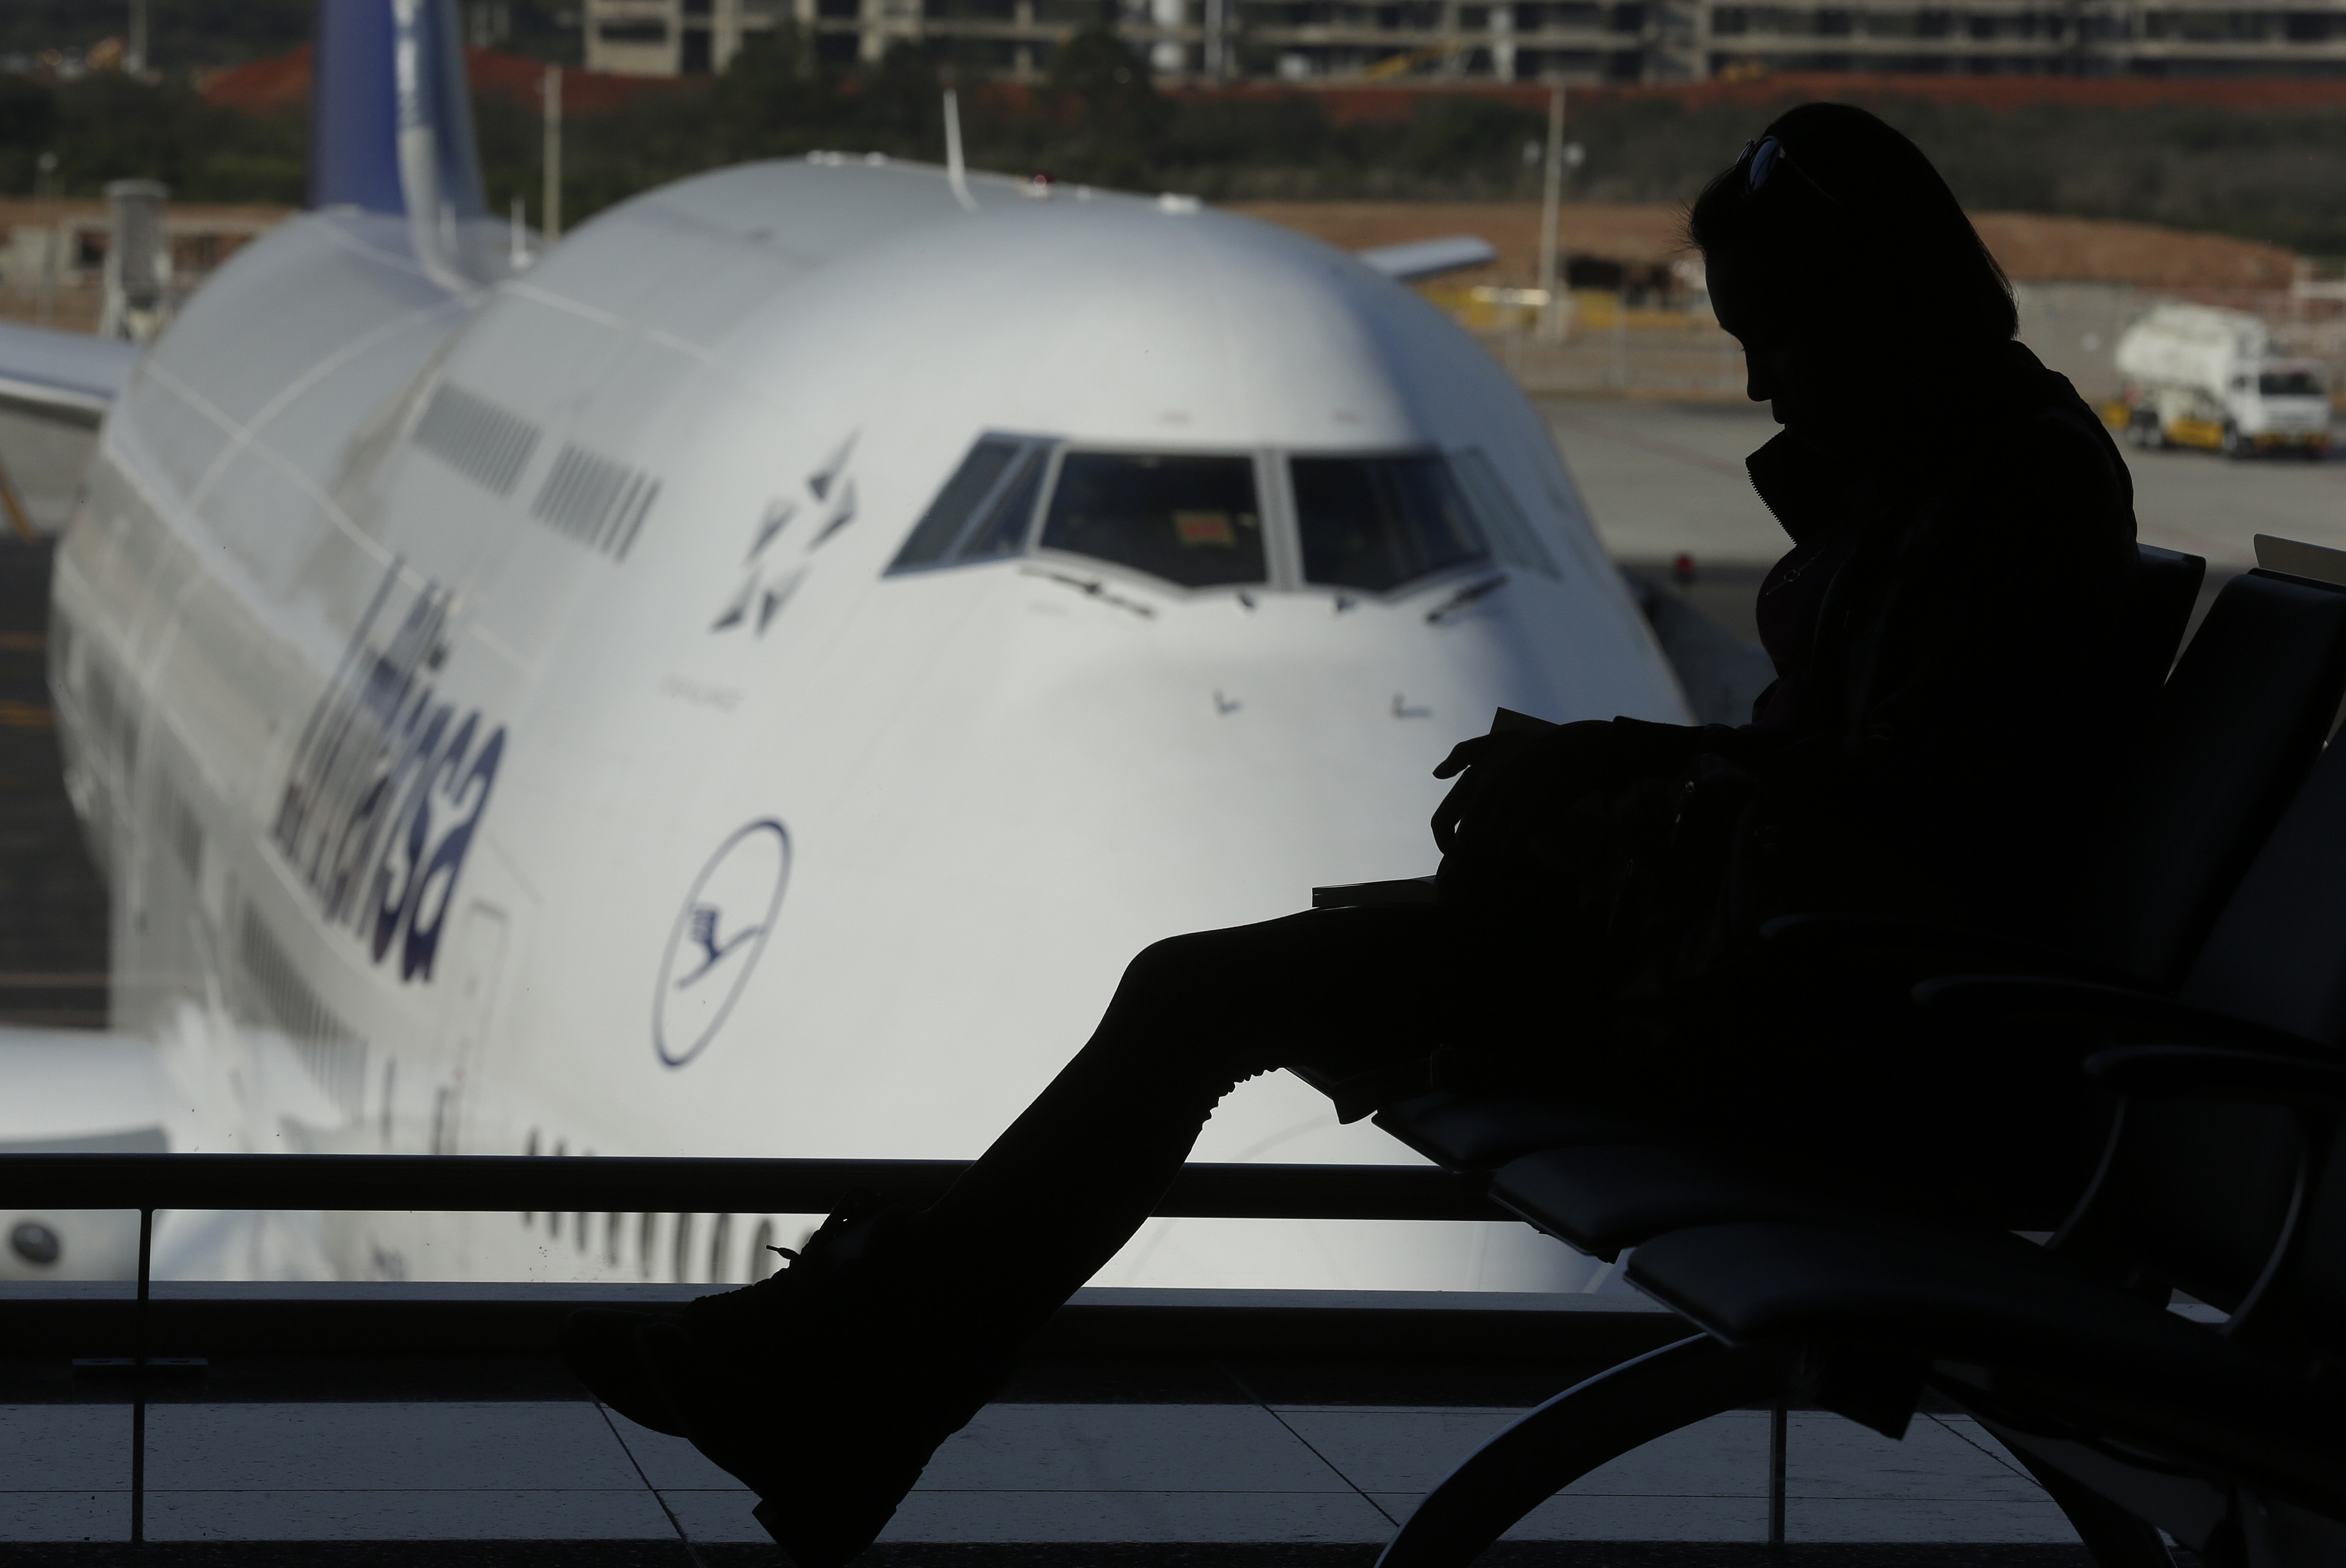 Women should use common sense when trying to minimize risk while traveling alone.